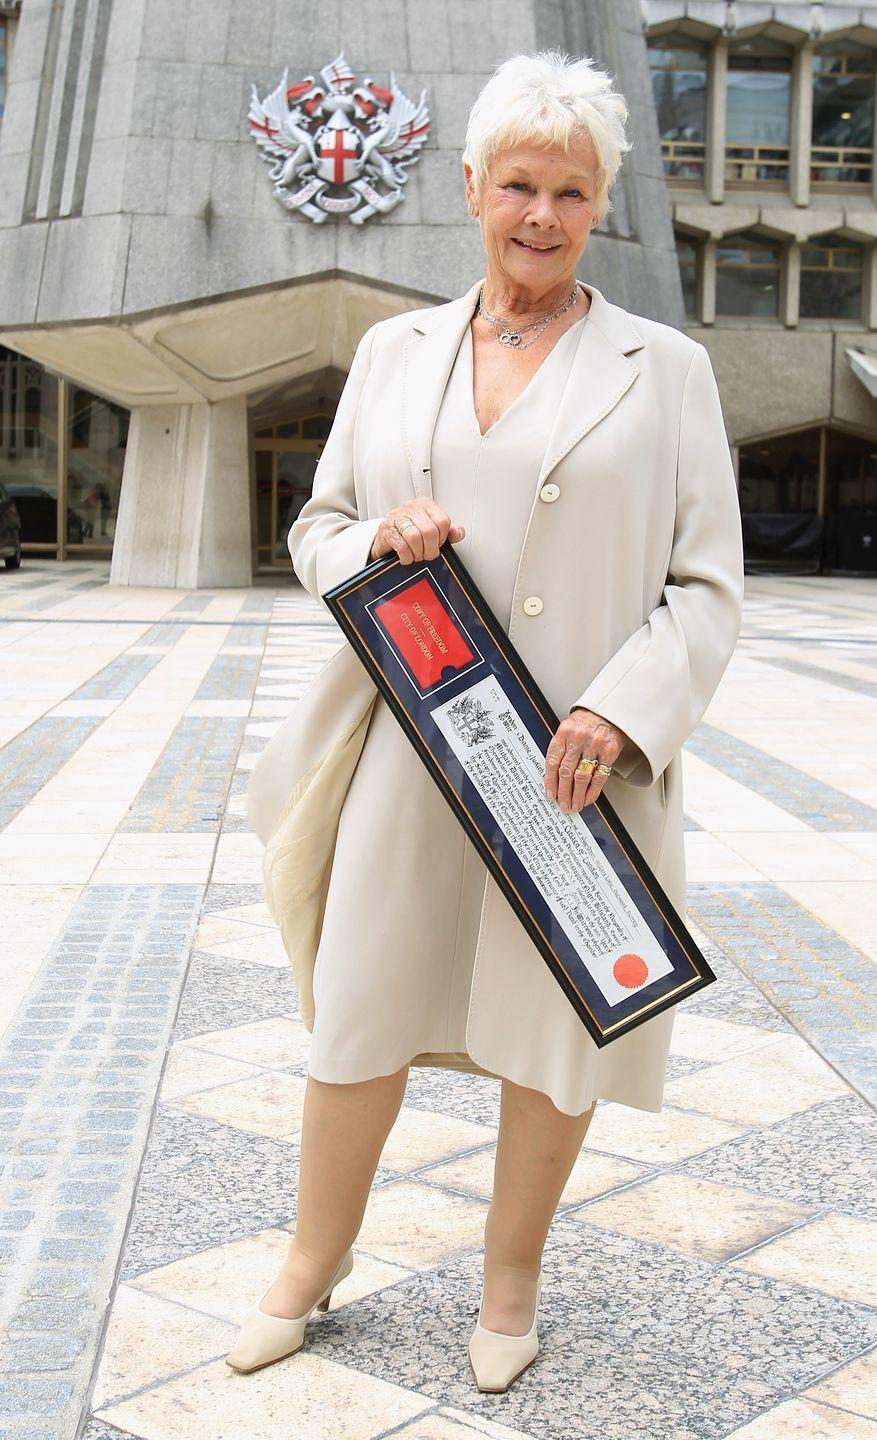 <p>The Freedom of the City of London is awarded to those who have achieved success or recognition in their field. The honor was bestowed on Dench at the Guildhall in London.</p>